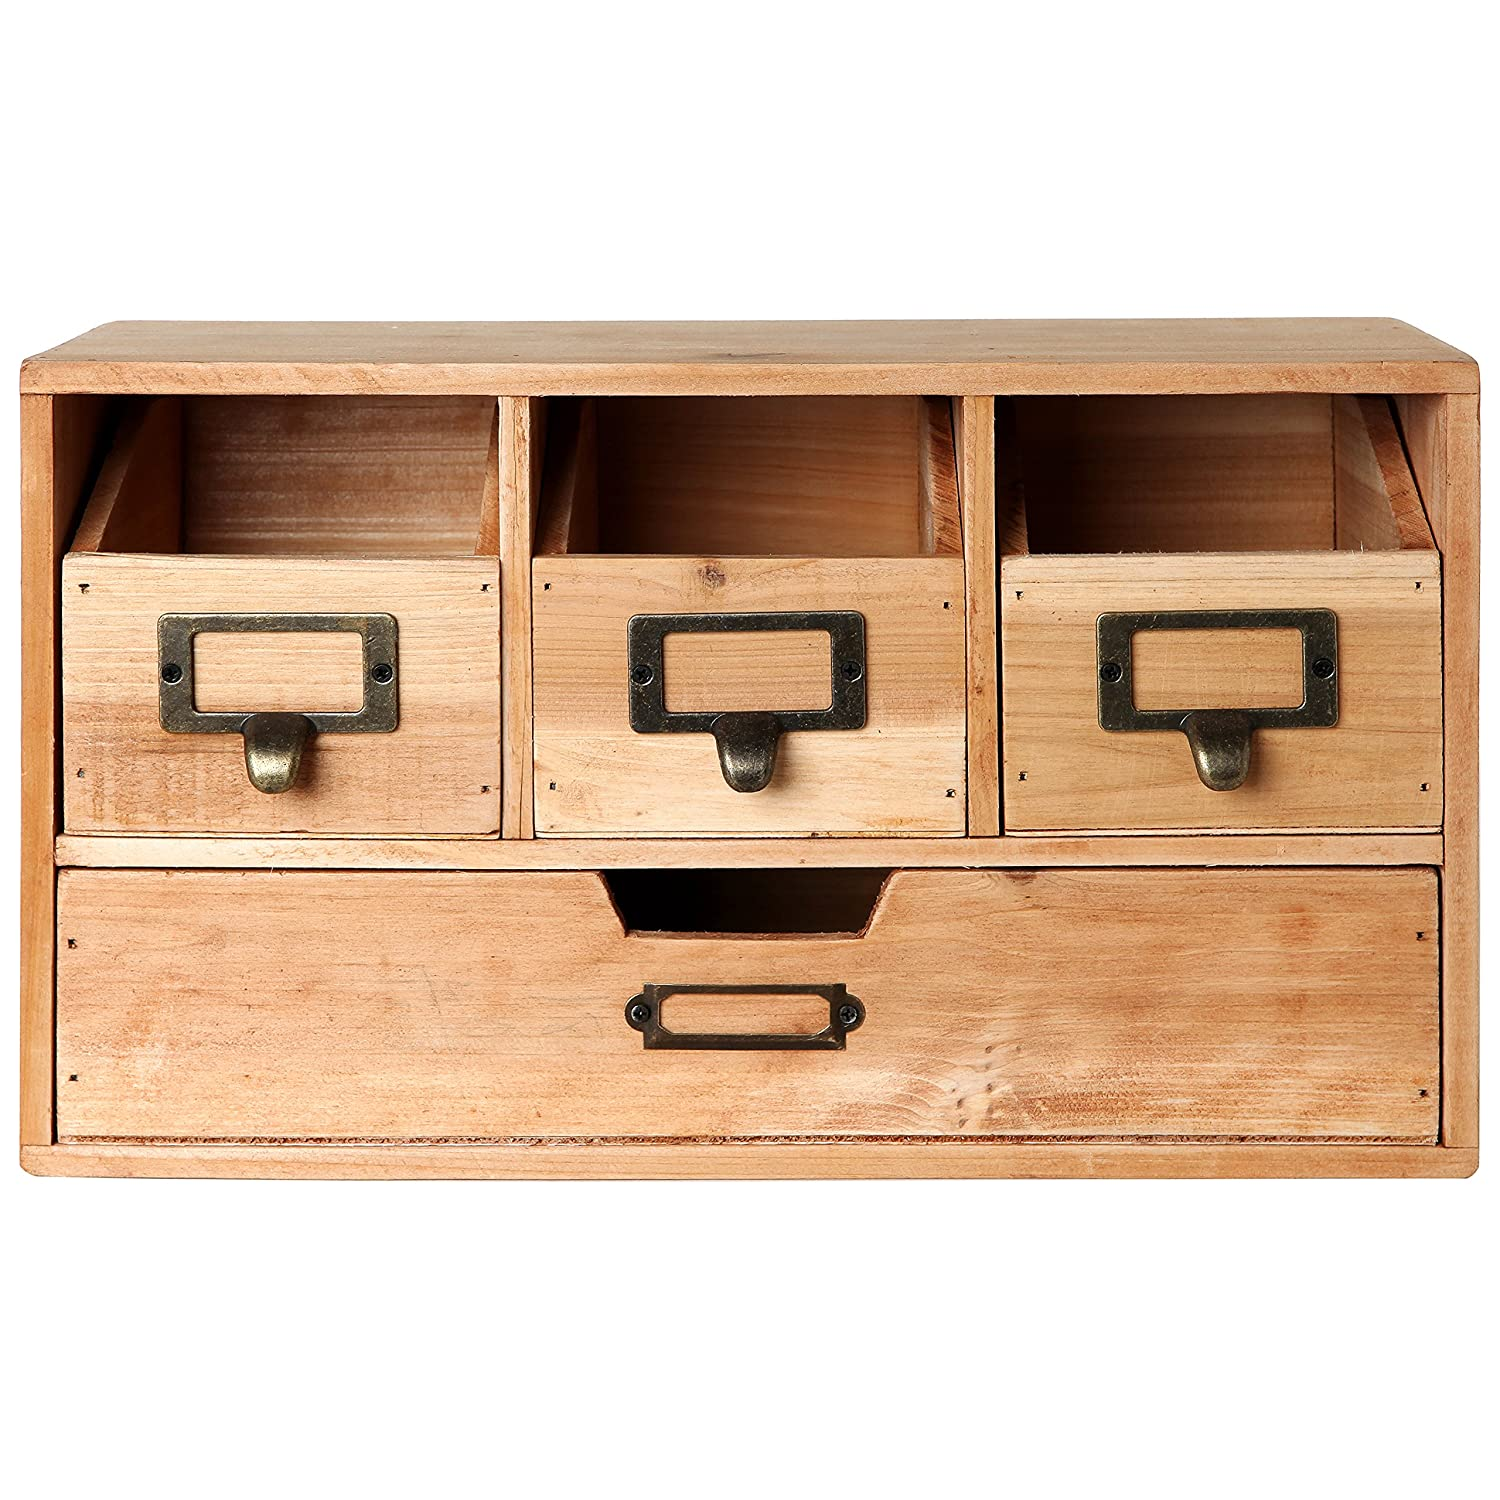 desktop office drawer organiser organizer file storage clear captivating room photographs glamorous drawers trays